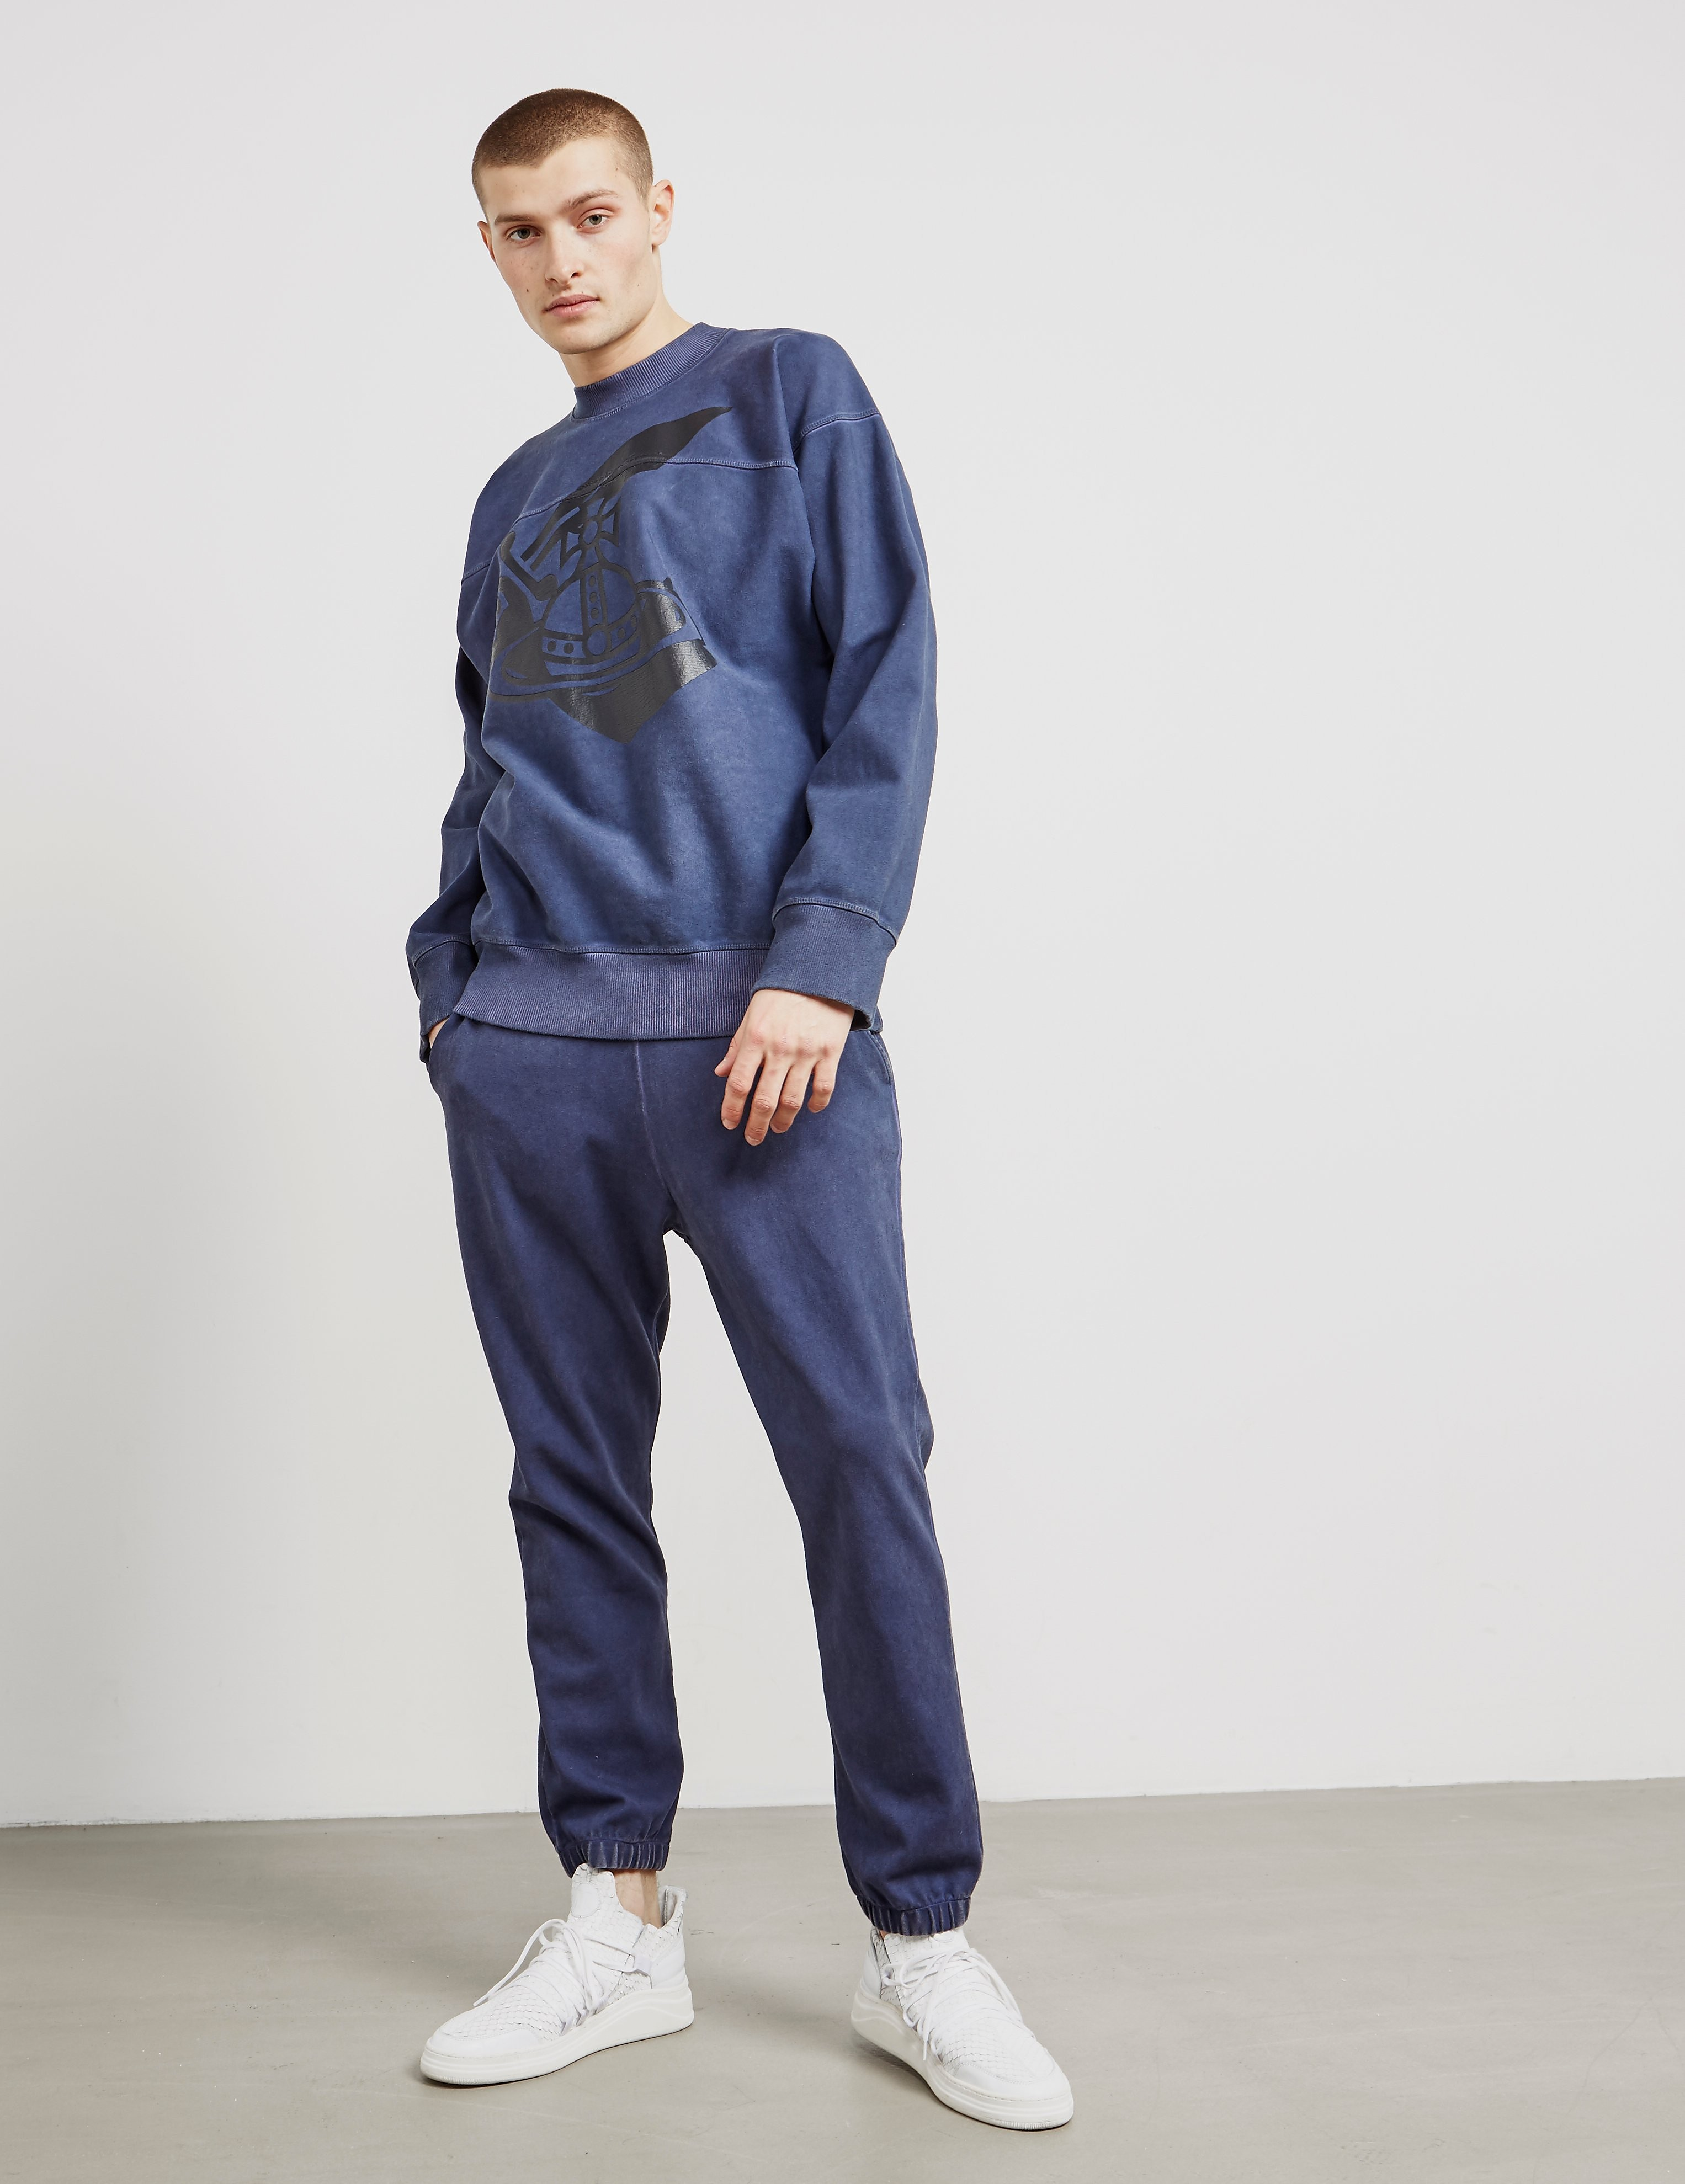 Vivienne Westwood Anglomania Sword Cuffed Track Pants